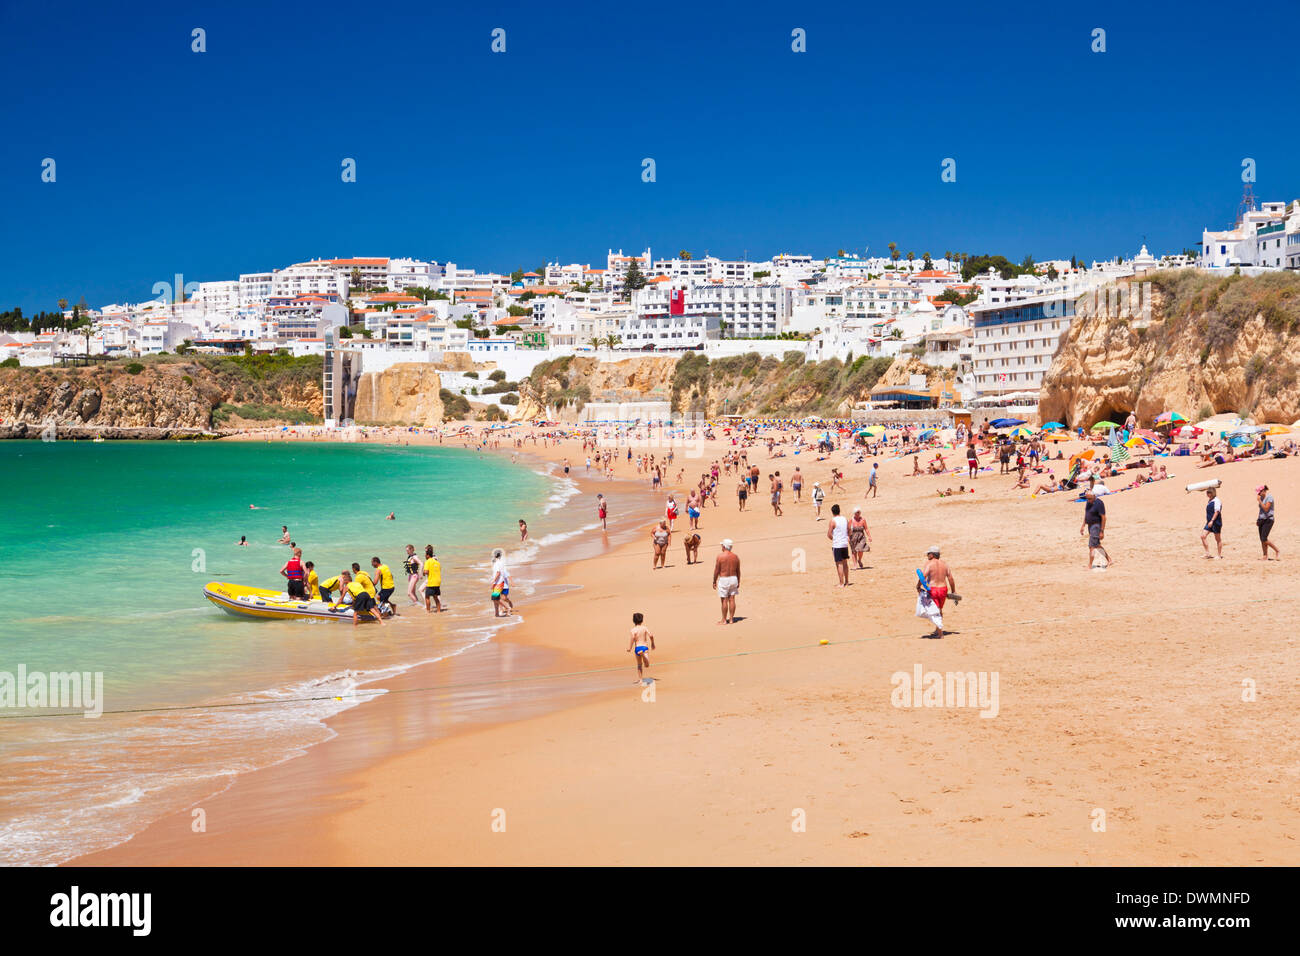 Holidaymakers on Fishermans Beach (Praia dos Pescadores), Albufeira Beach, Algarve, Portugal, Europe - Stock Image